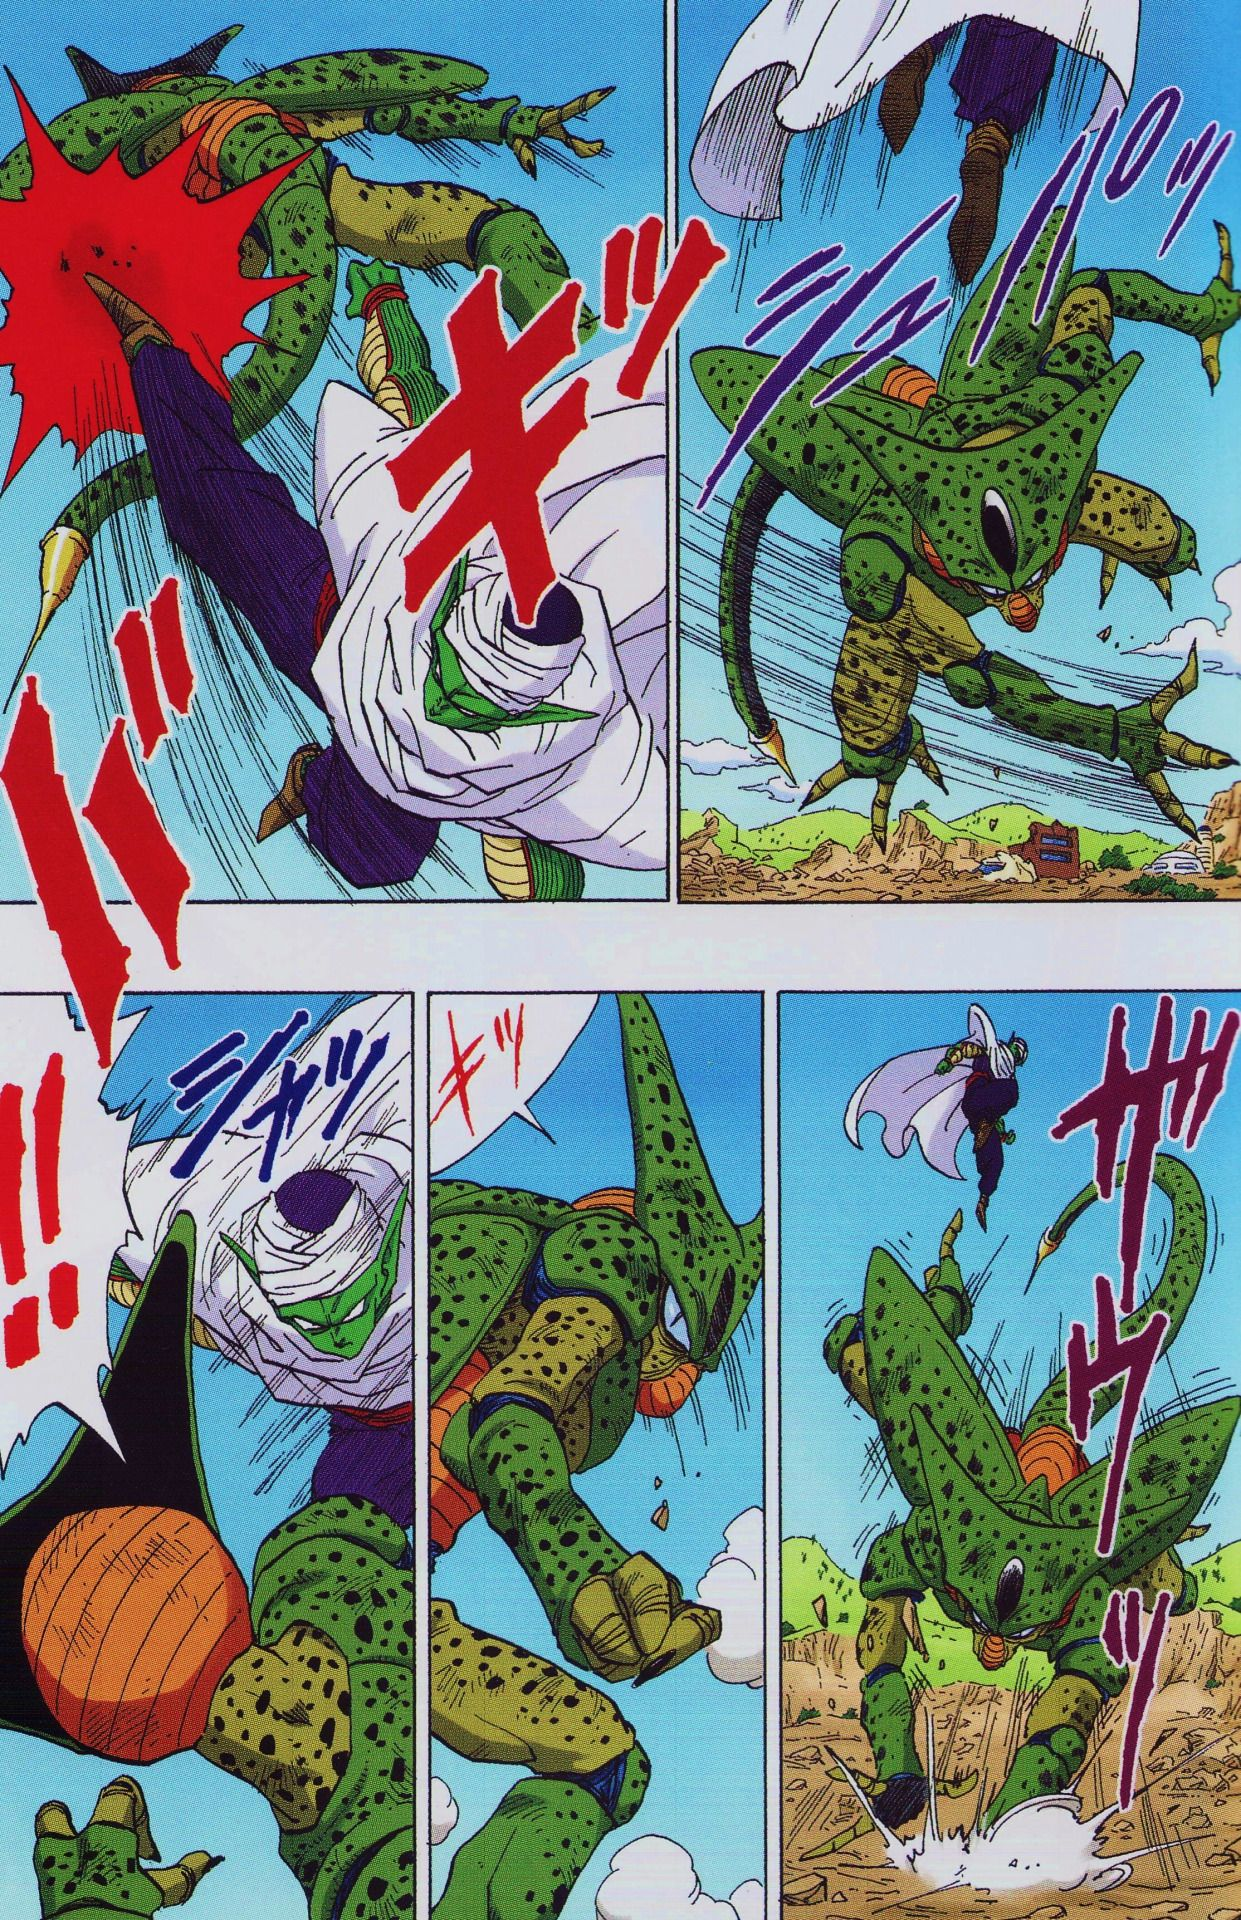 Piccolo VS Cell first formillustrated by Akira ToriyamaPublished by JUMP COMICS / SHUEISHASource : Dragon Ball manga full colour edition (Japanese version)